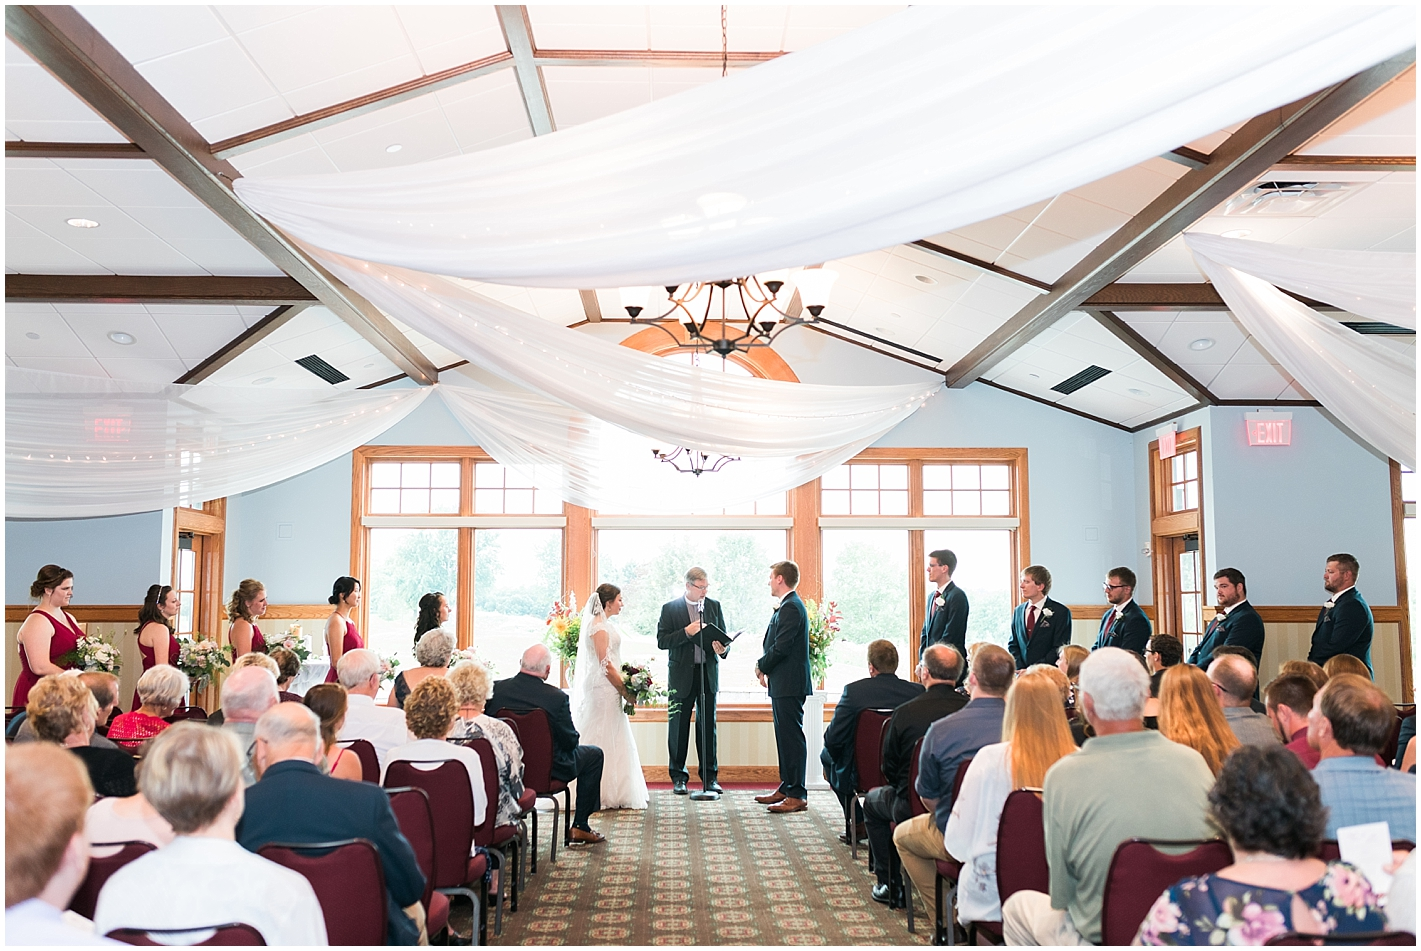 Indoor Ceremony at Keller Golf Course wedding Minneapolis MN Photos by Alyssa Parker Photography